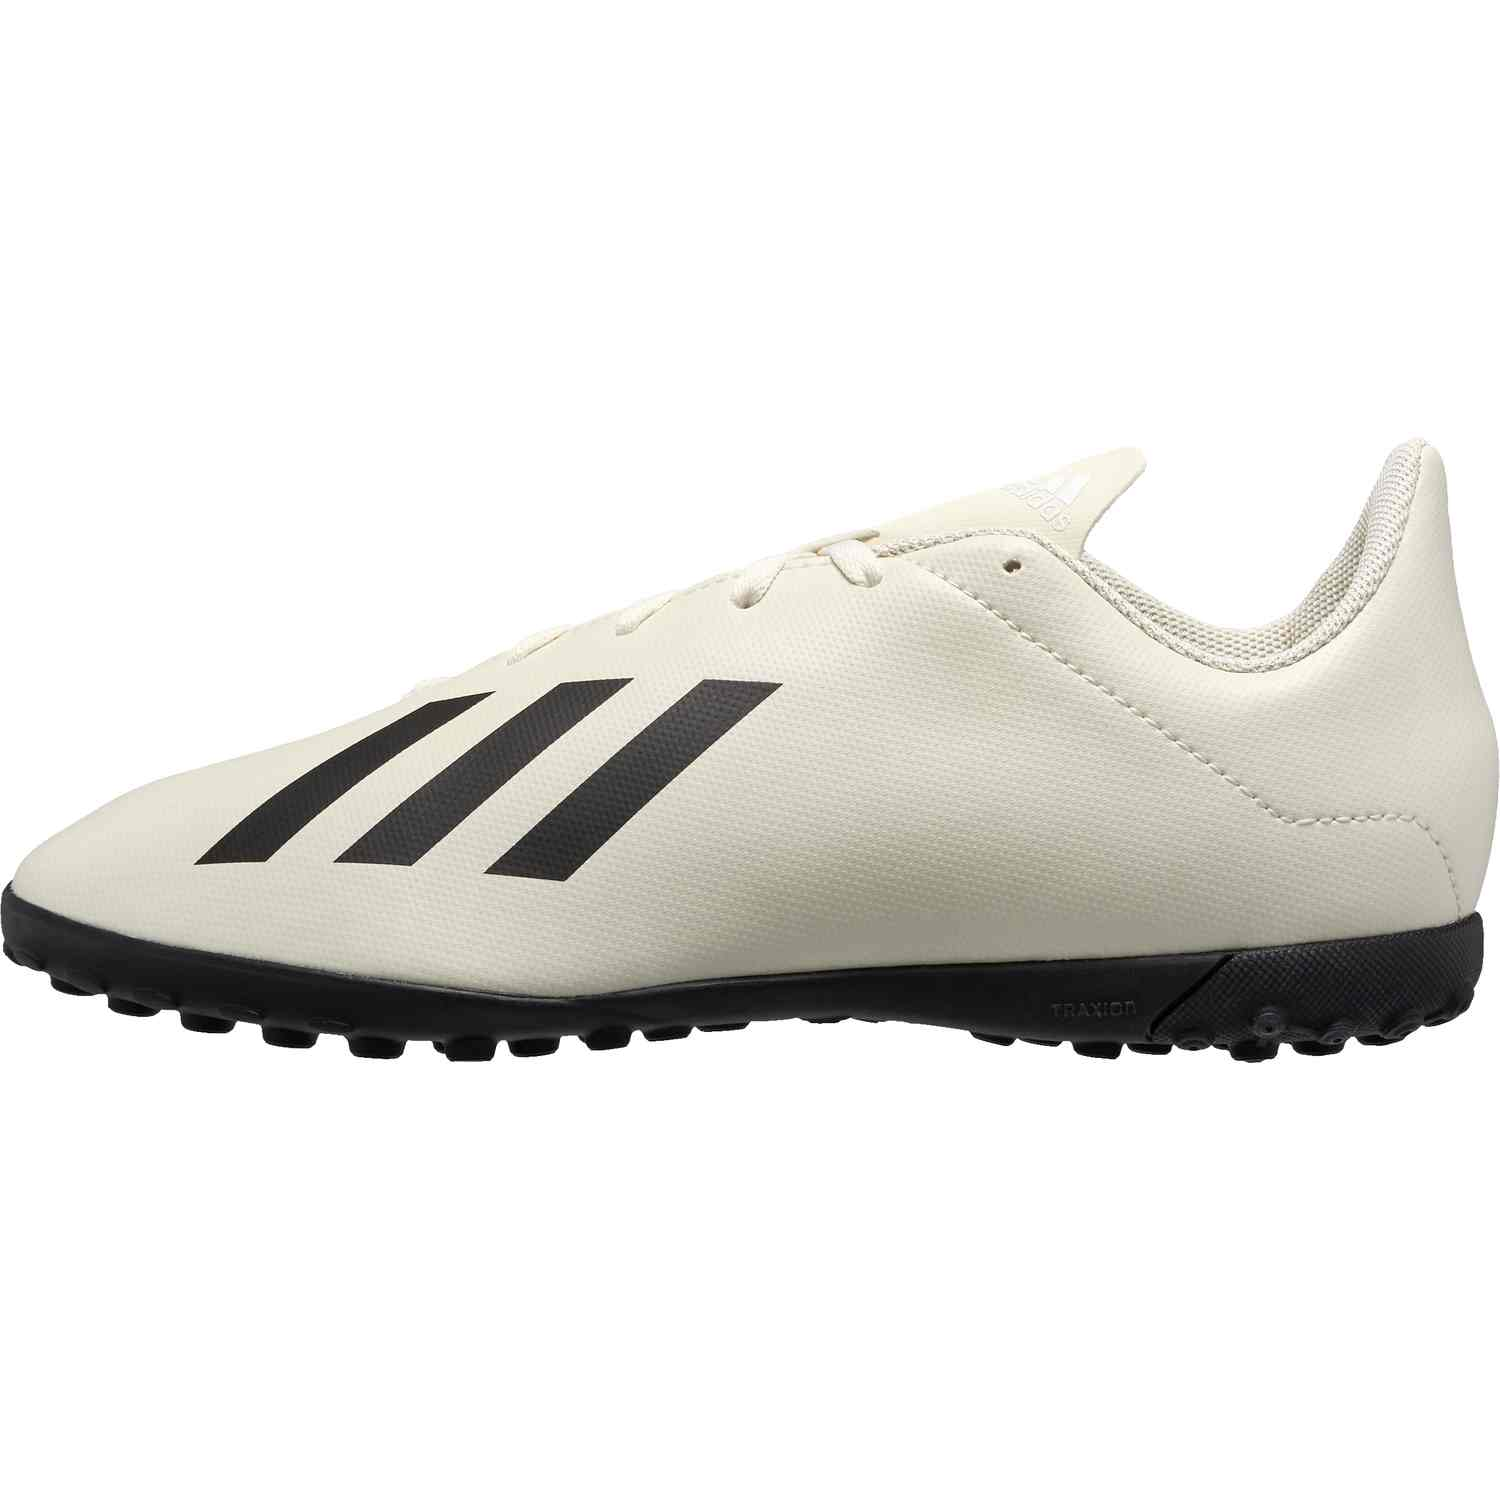 buy online 61461 16e90 adidas X Tango 18.4 TF - Youth - Off White/White/Black - SoccerPro